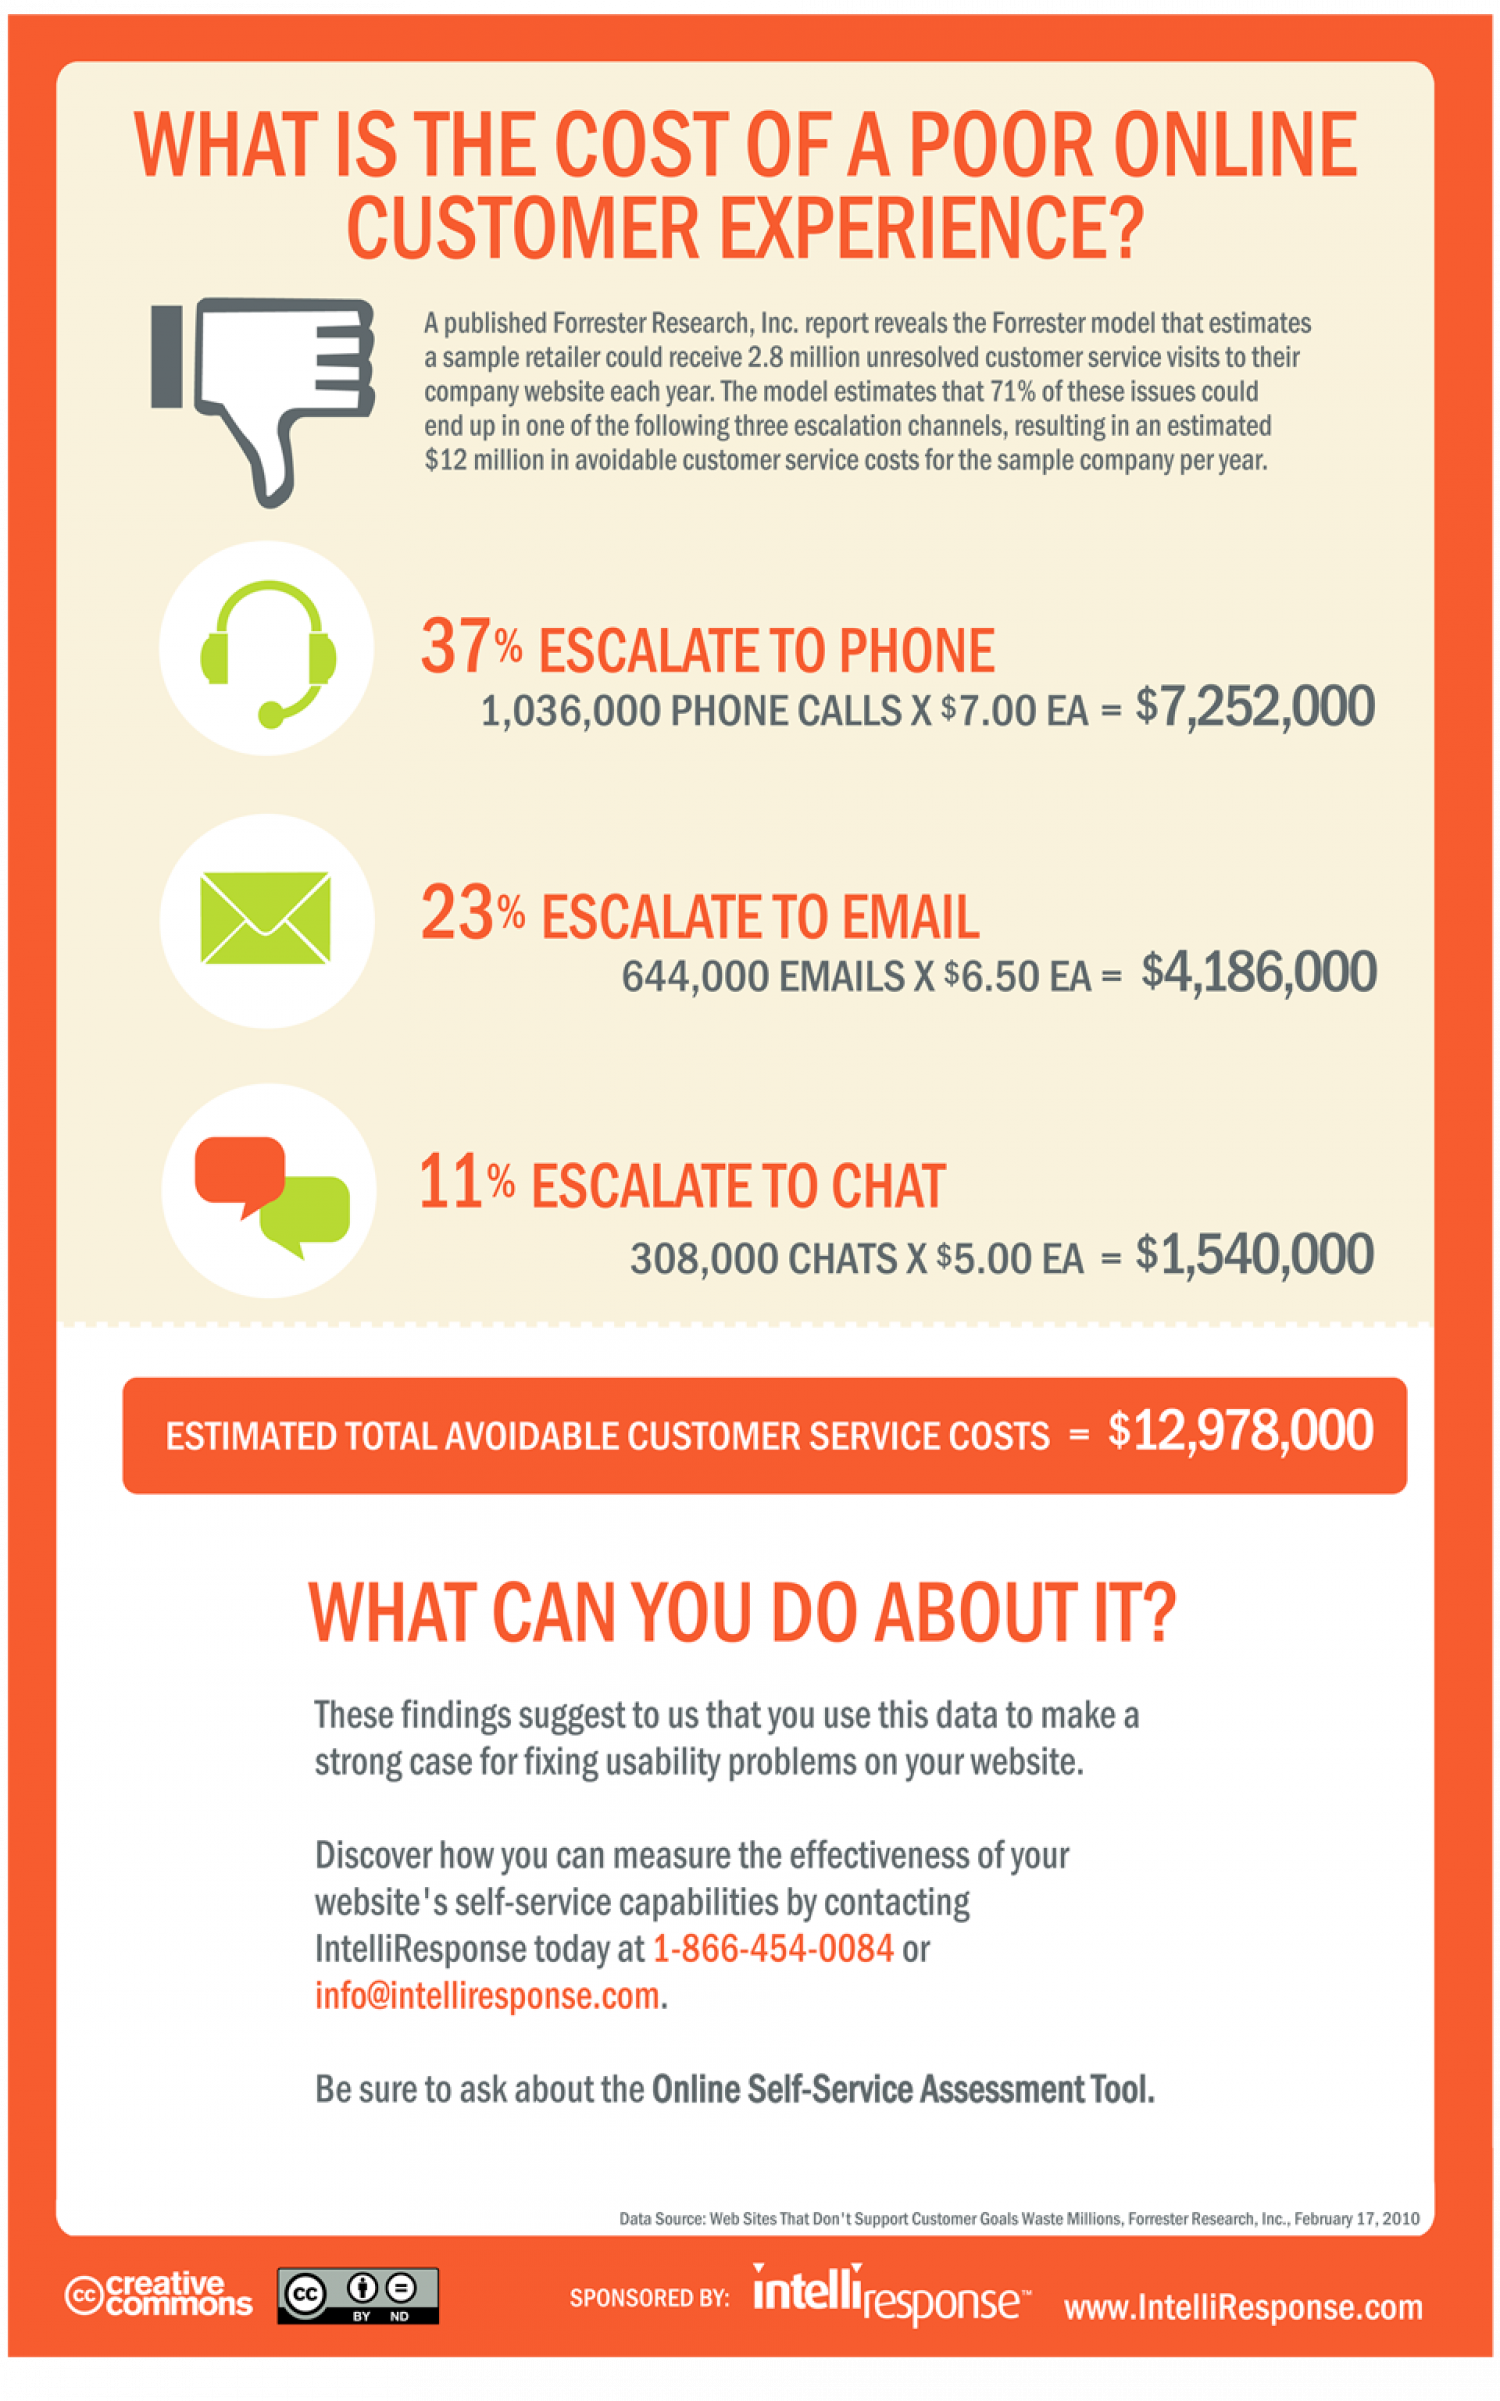 The Cost of a Poor Online Customer Experience Infographic